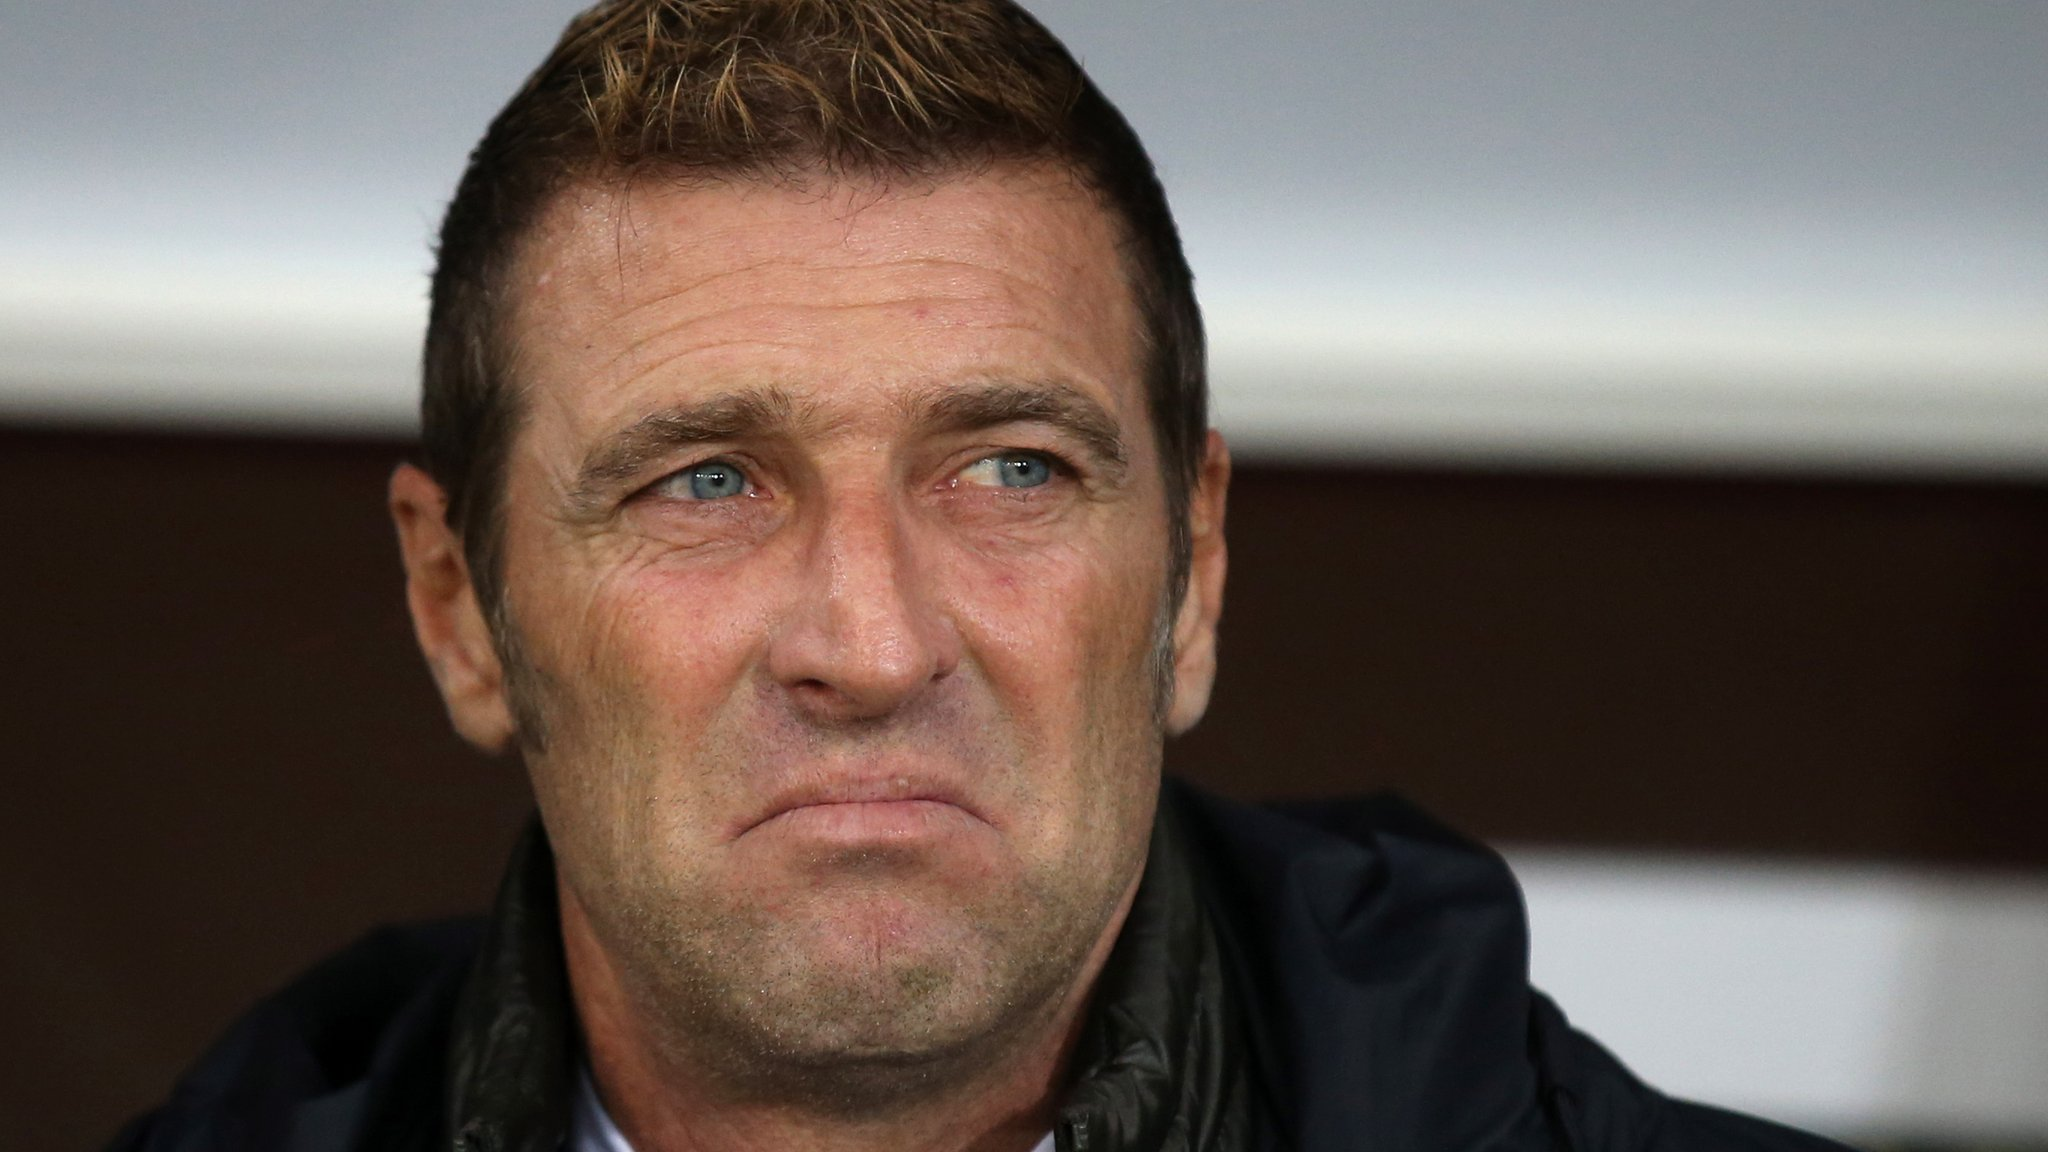 Rangers' Europa League opponents Spartak Moscow sack manager Massimo Carrera